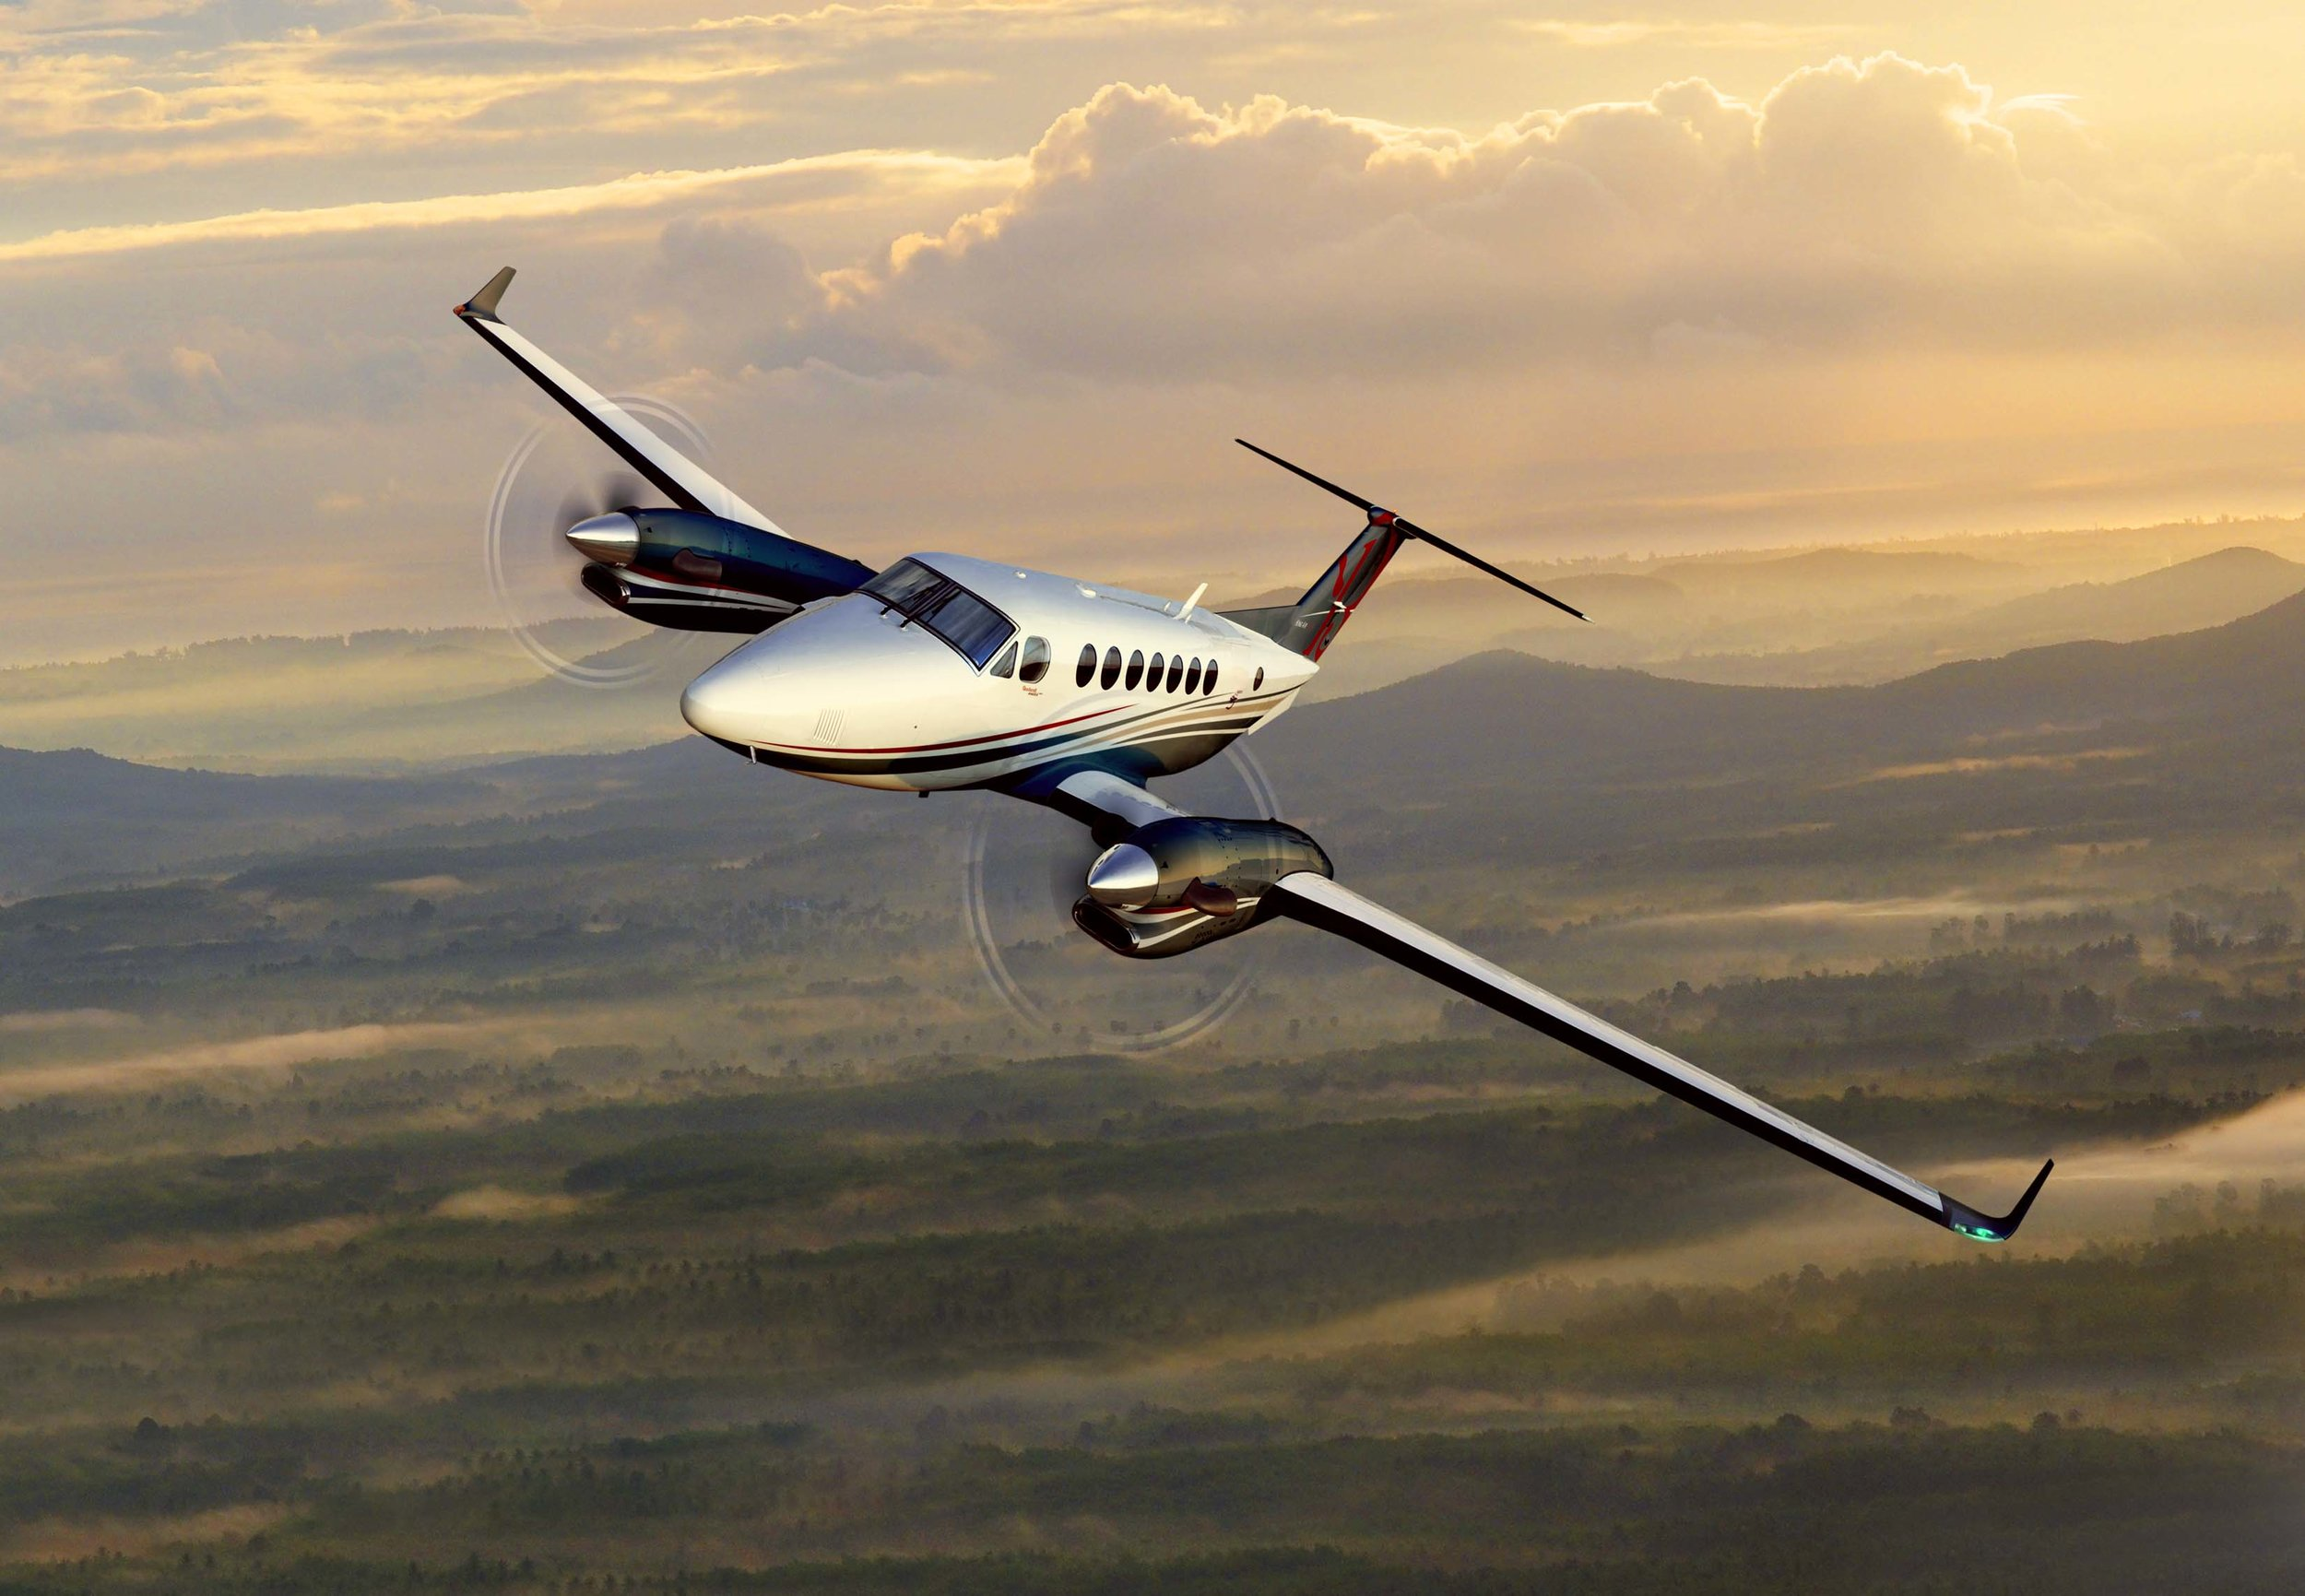 Trym's dream: flying a Beechcraft King Air 350i